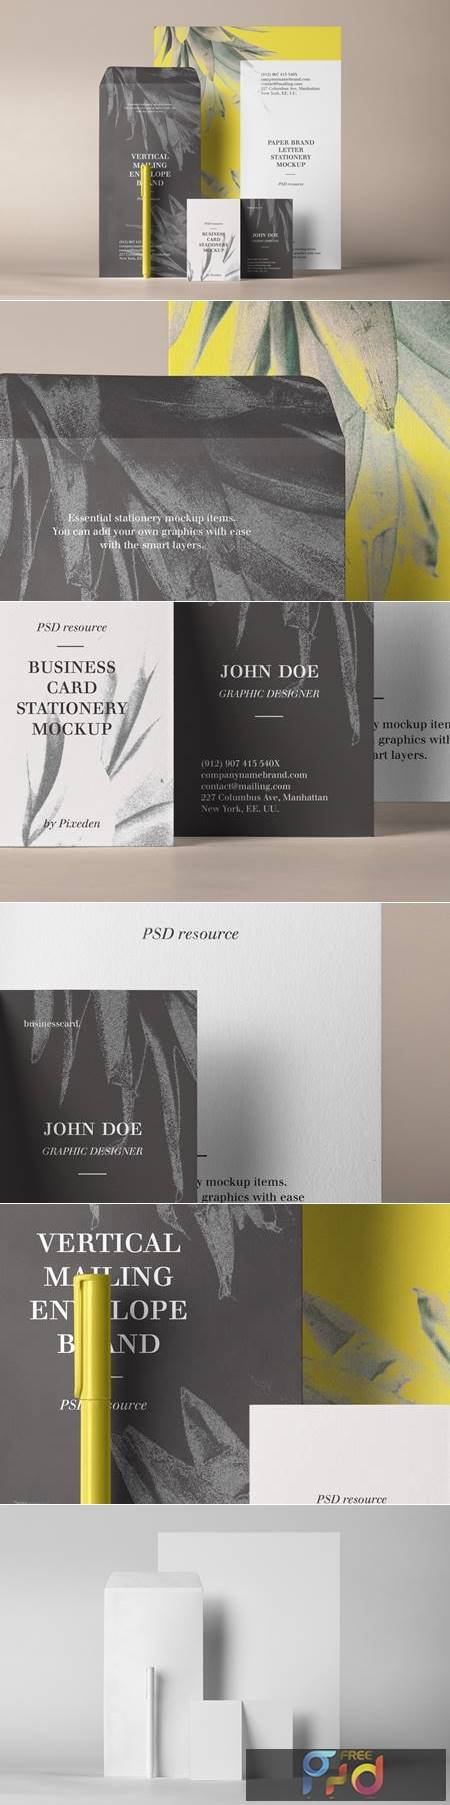 Stationery Branding Mockup Vol 33 1340 1